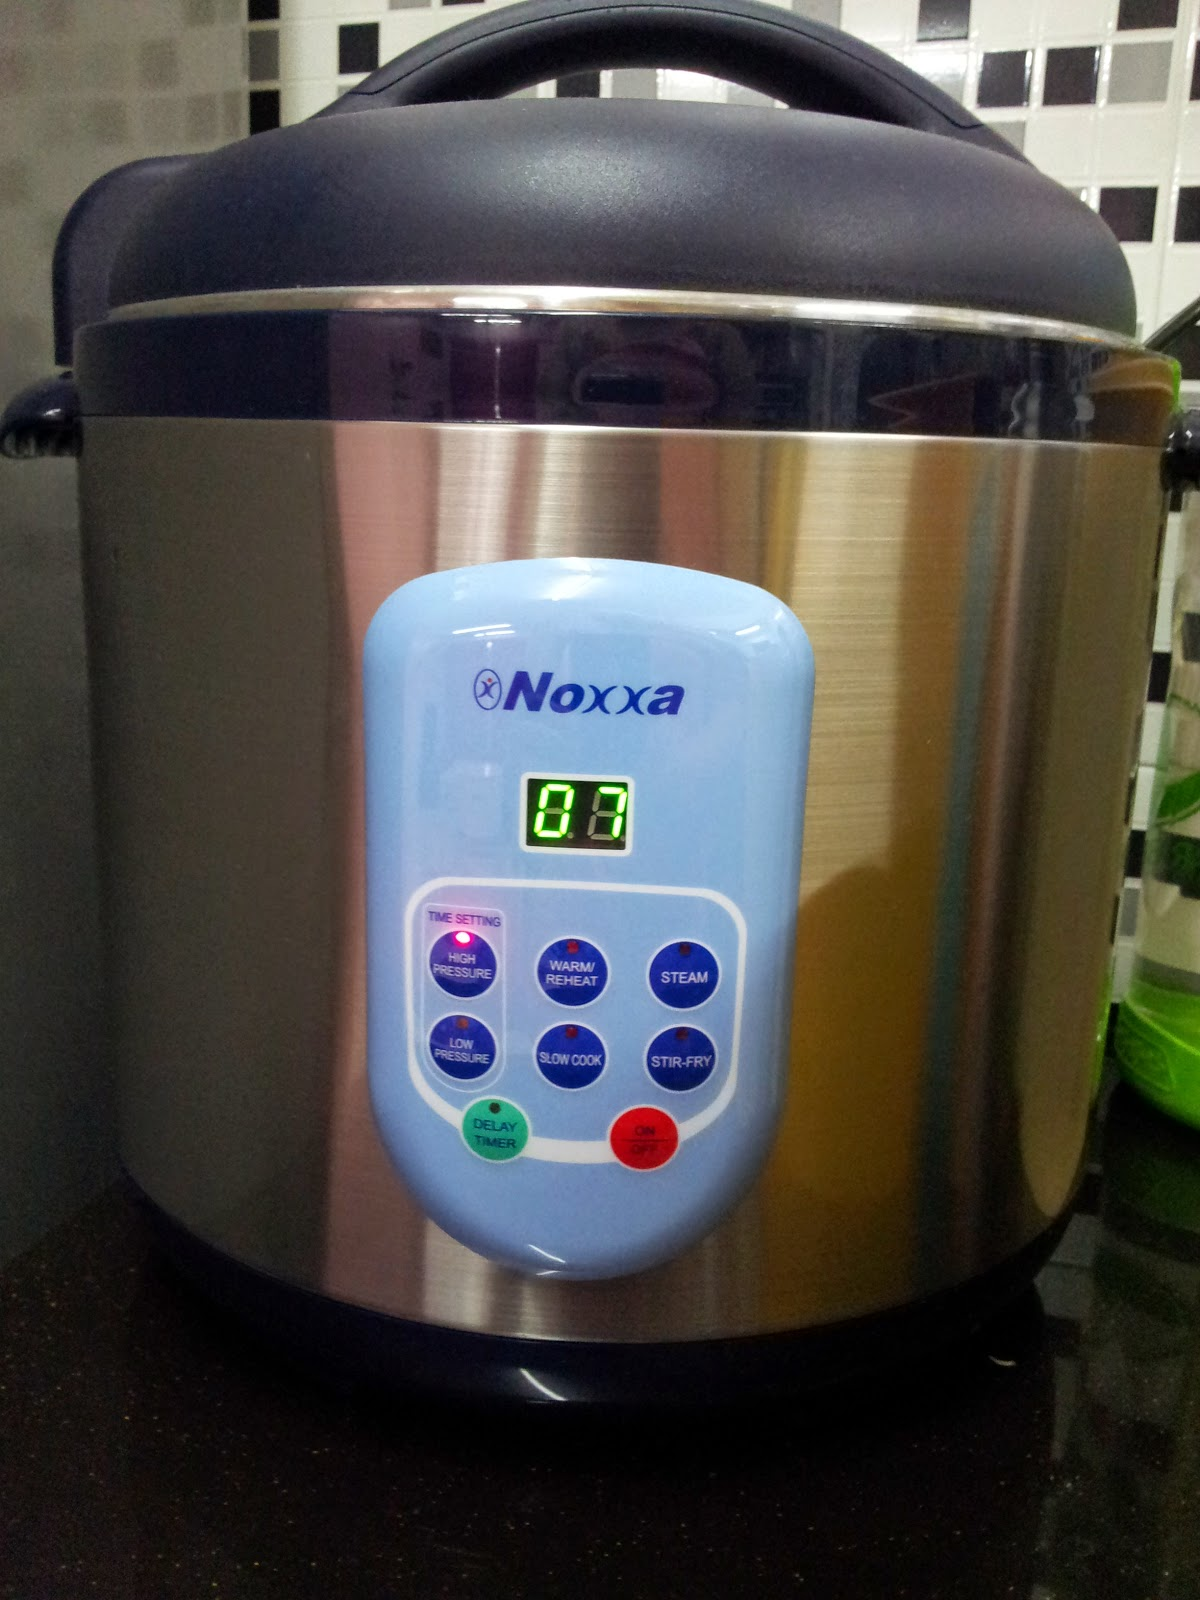 Noxxa Multifunction Pressure Cooker No Power 171 Diy